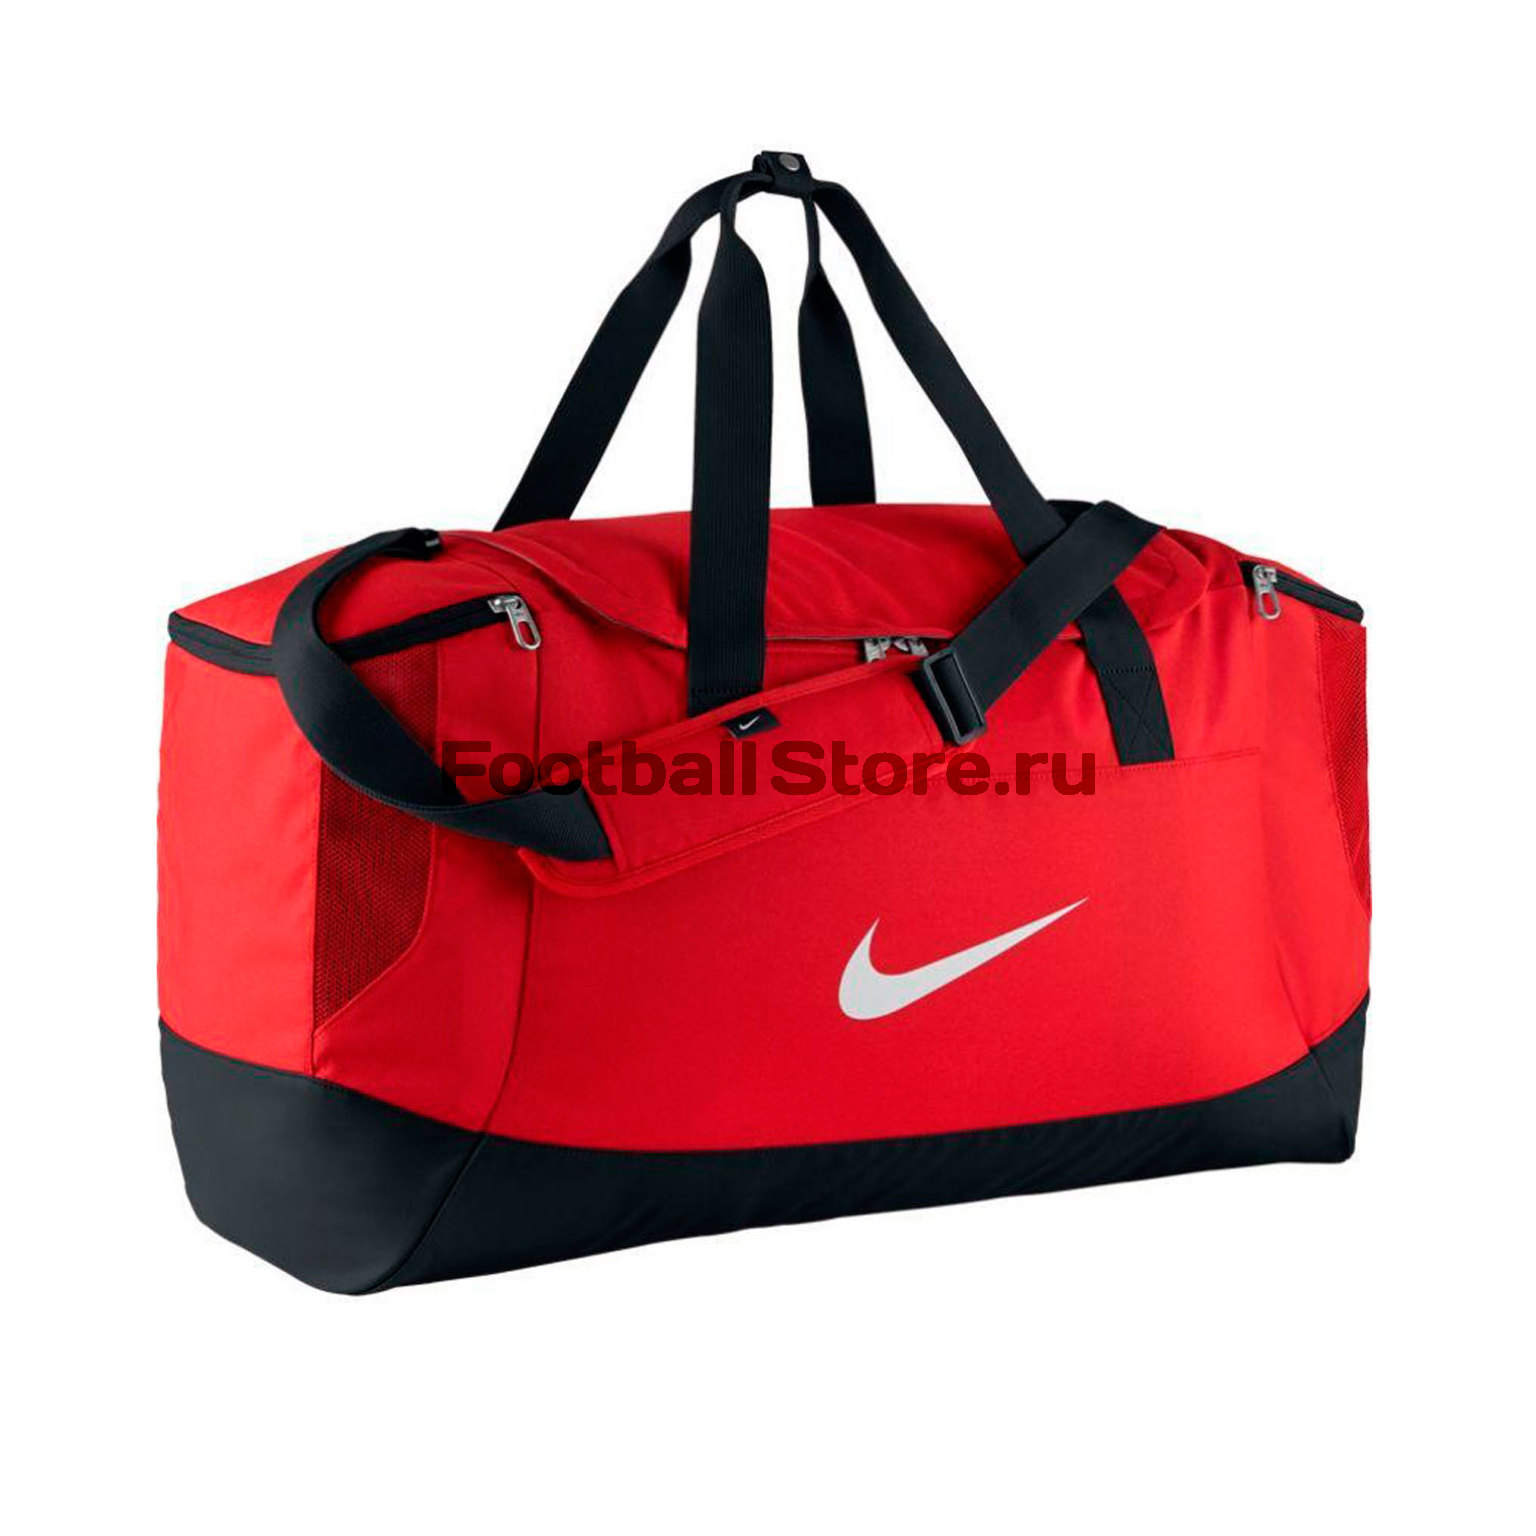 Сумки/Рюкзаки Nike Сумка Nike Club Team Swoosh Duff L BA5192-658 nike nike club team swoosh backpack